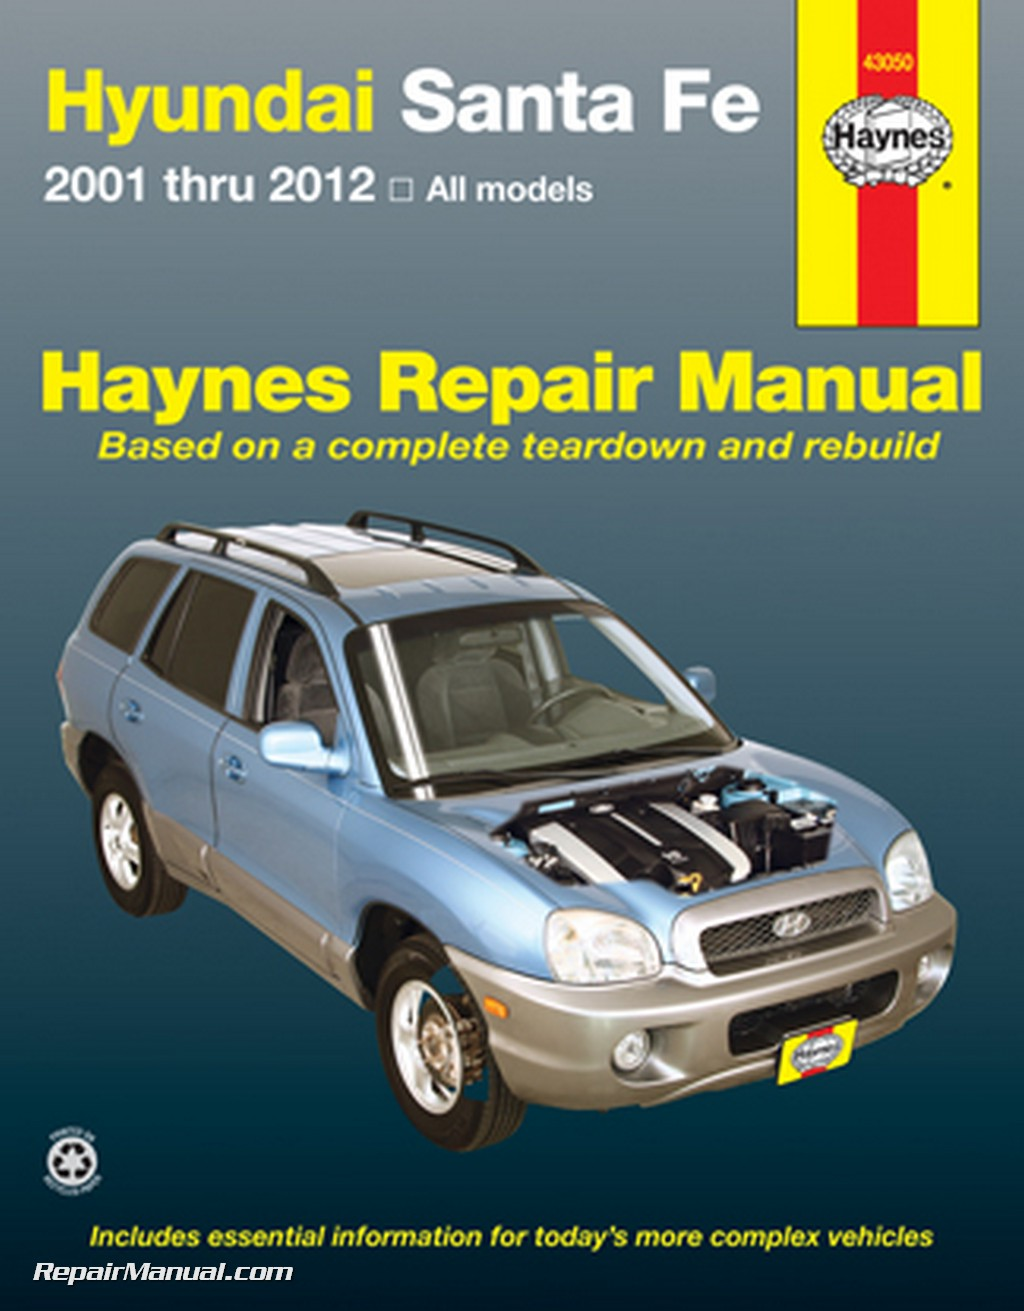 haynes hyundai santa fe 2001 2012 auto repair manual rh repairmanual com 2006 passat haynes manual 2006 passat haynes manual